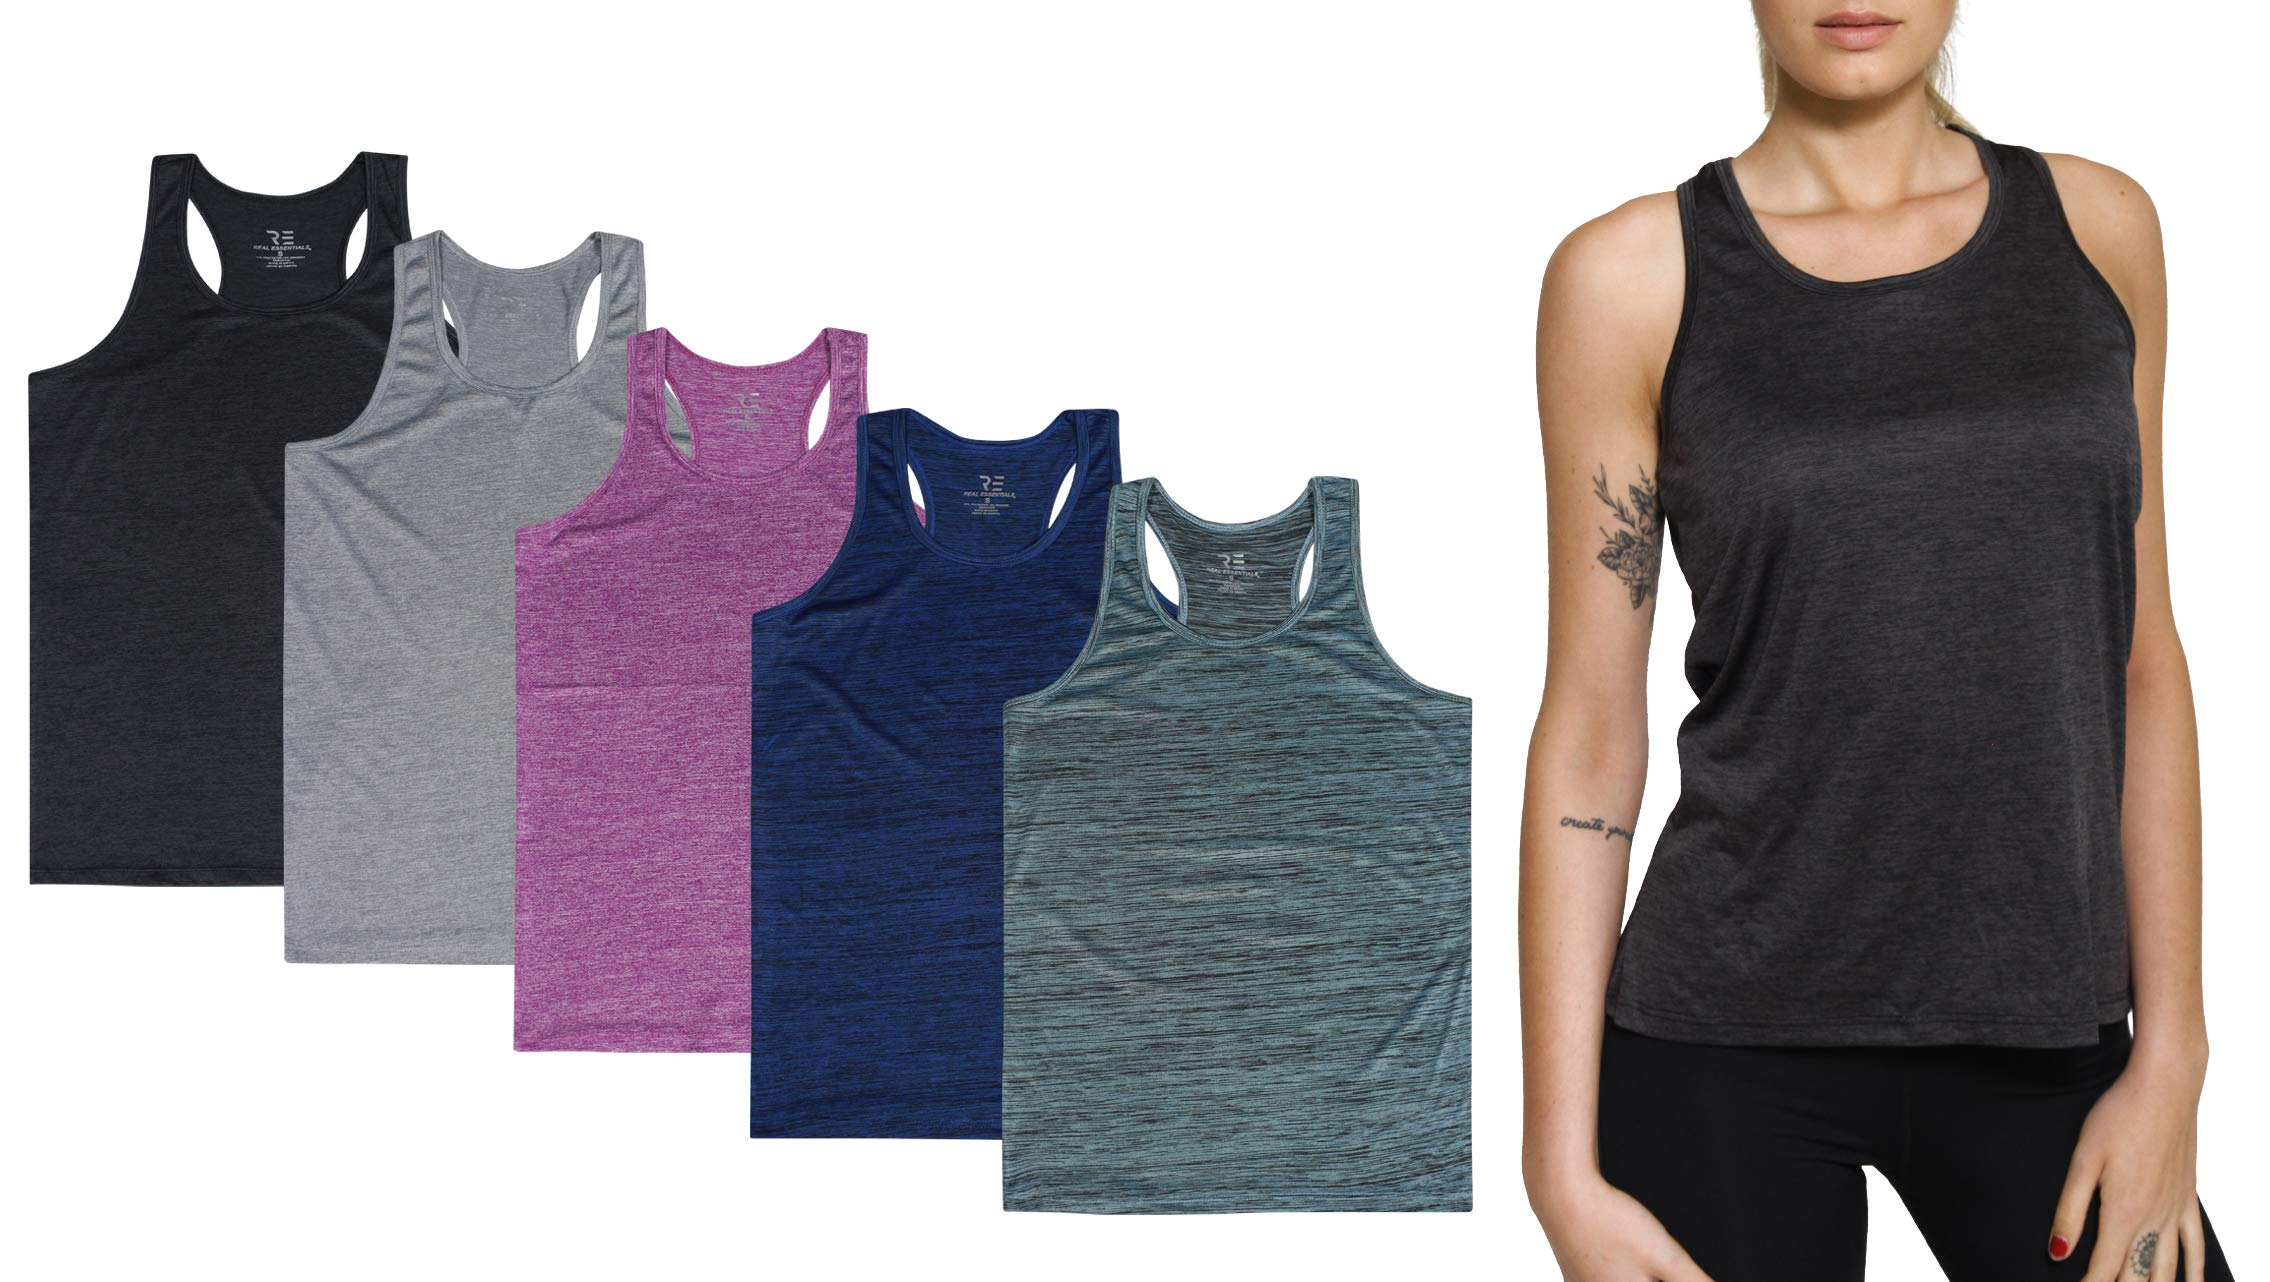 5 Pack:Women's Quick Dry Fit Dri-Fit Ladies Tops Athletic Yoga Workout Running Gym Active wear Exercise Clothes Racerback Sleeveless Flowy Tank Top - Set 1,L